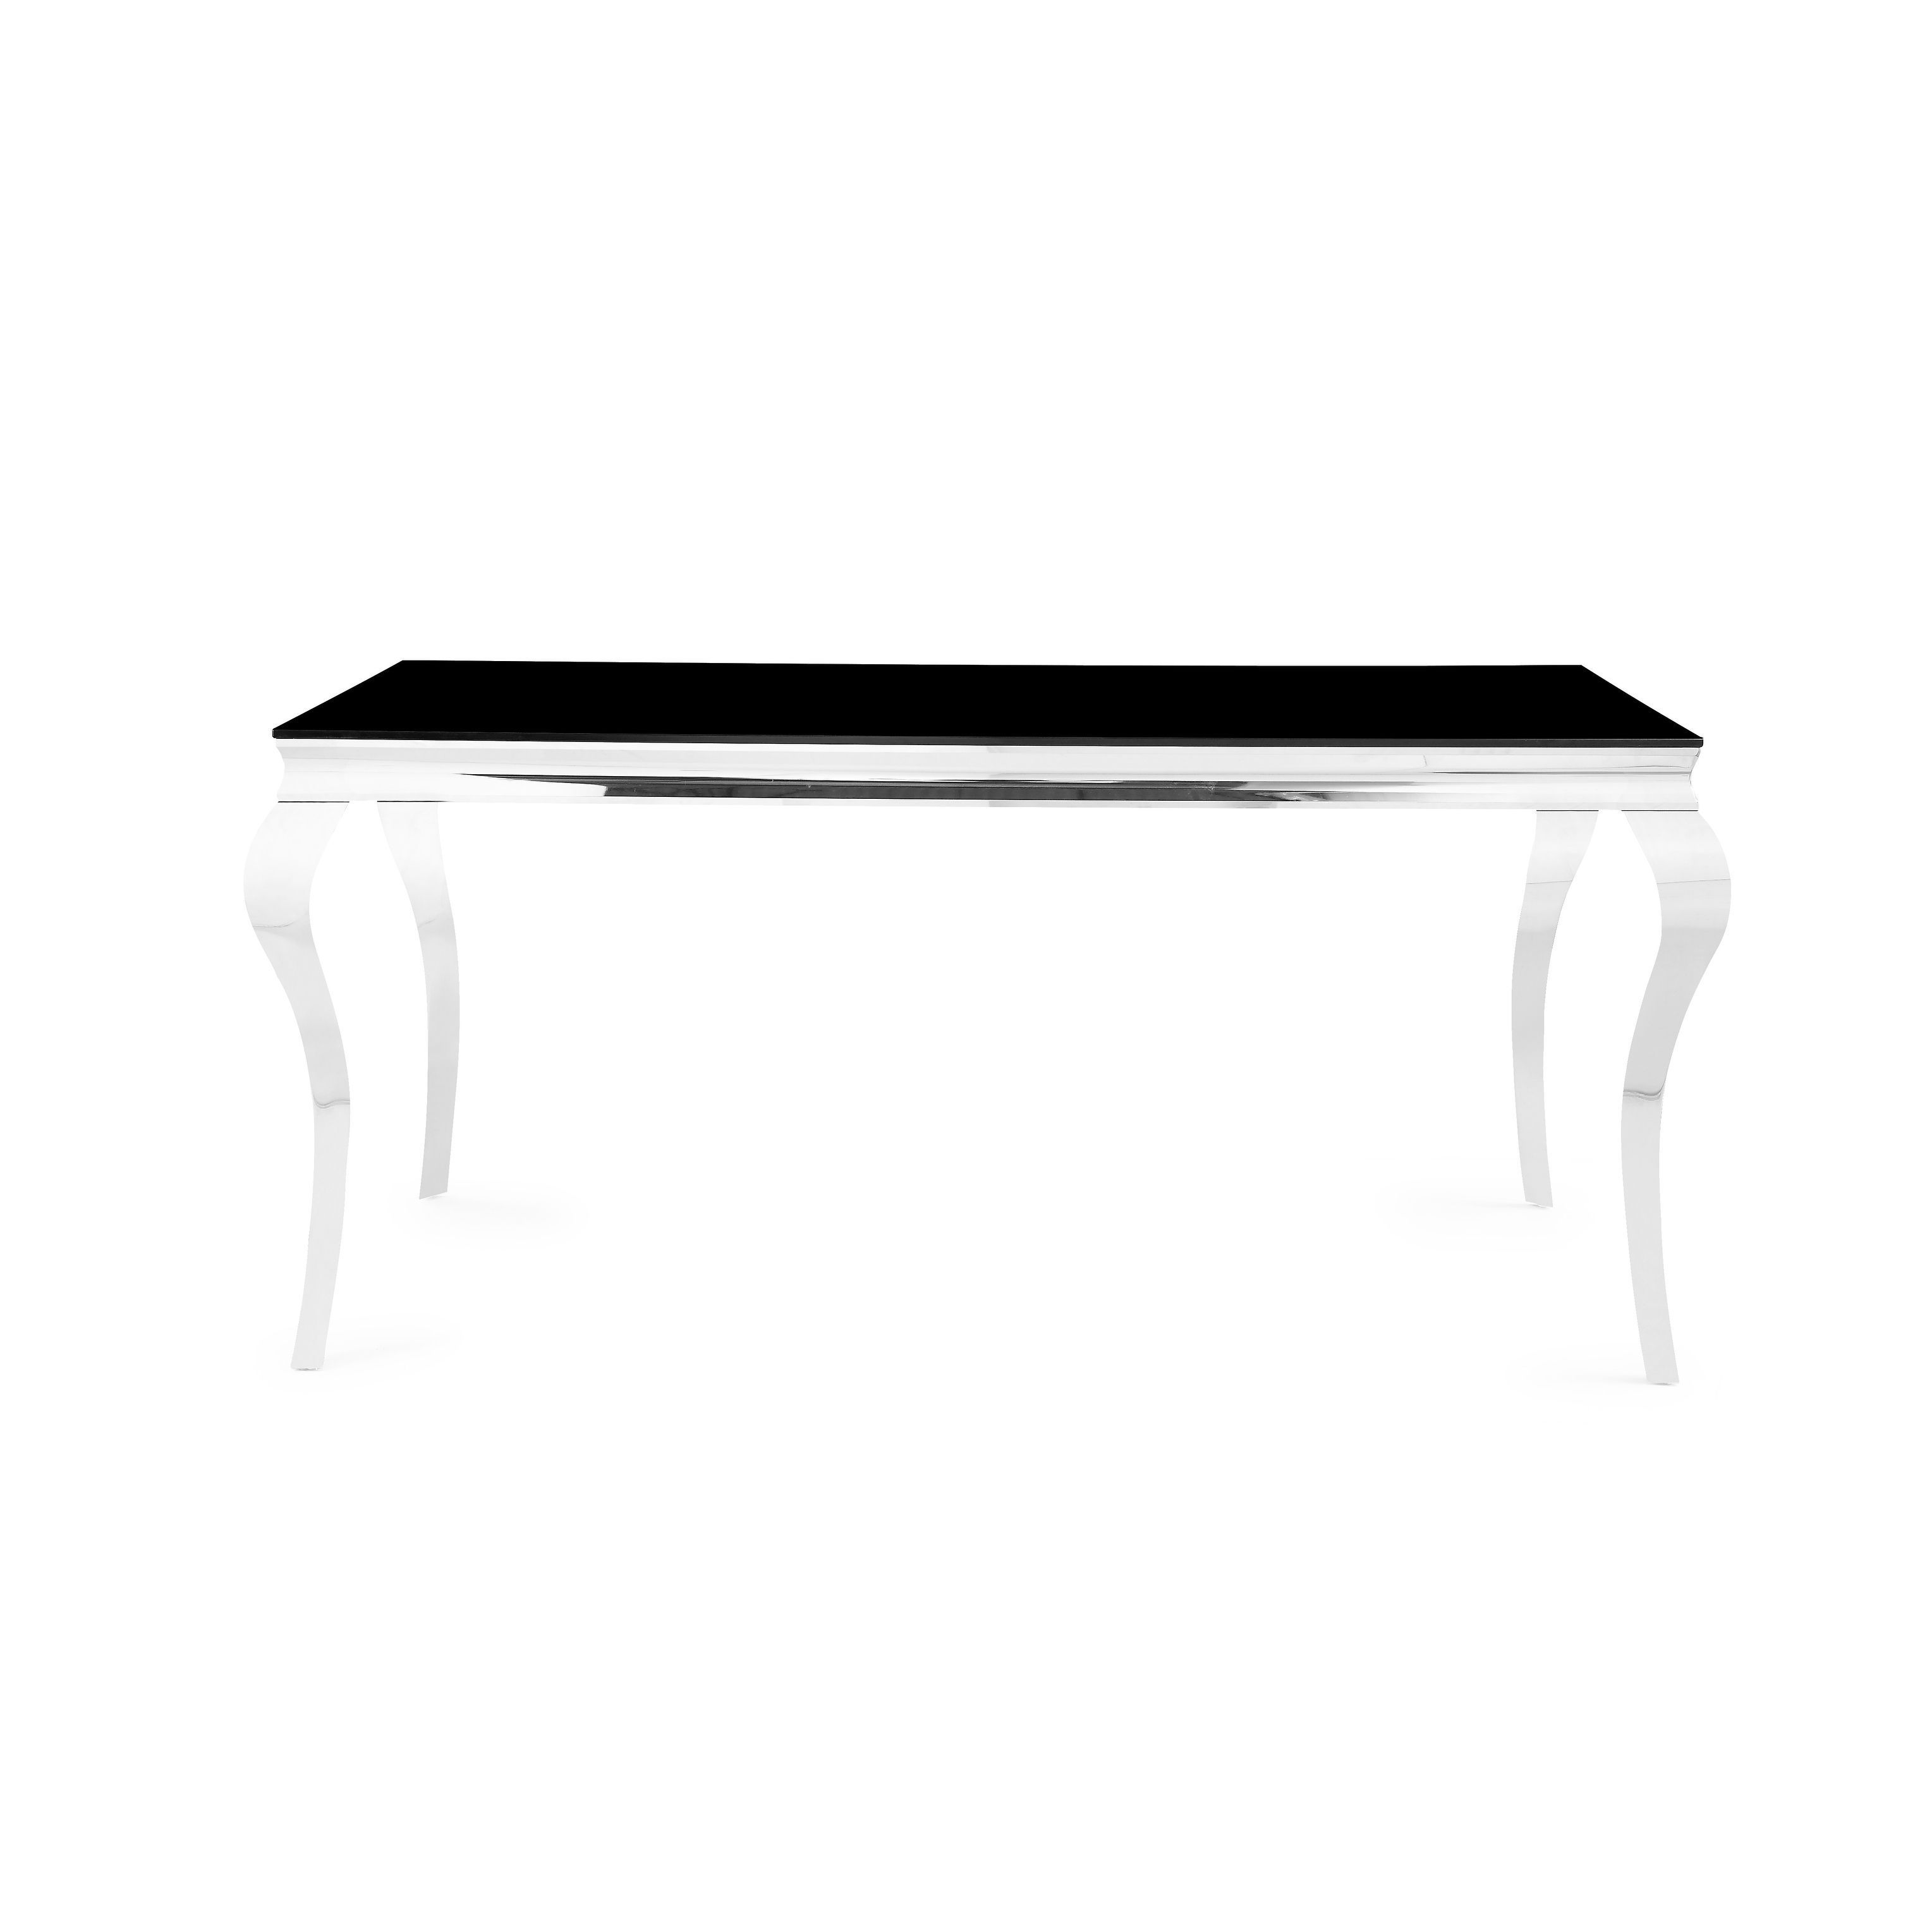 Online Shopping Bedding Furniture Electronics Jewelry Clothing More Dining Table Legs Dining Table In Kitchen Furniture